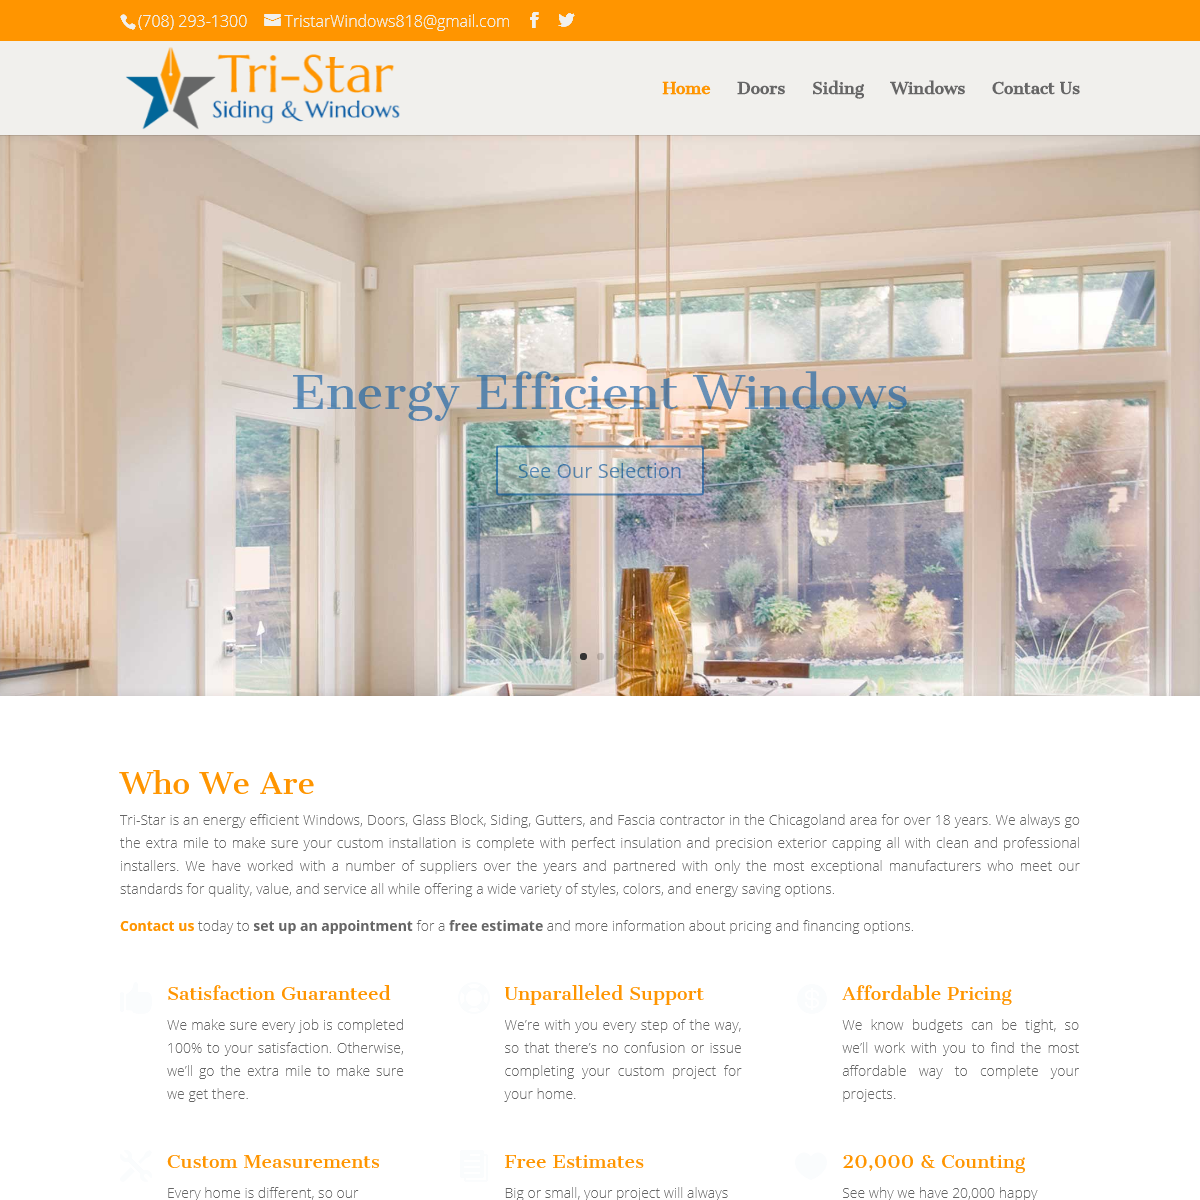 Tri-Star Siding & Windows - Chicagoland Windows & More Since 2001